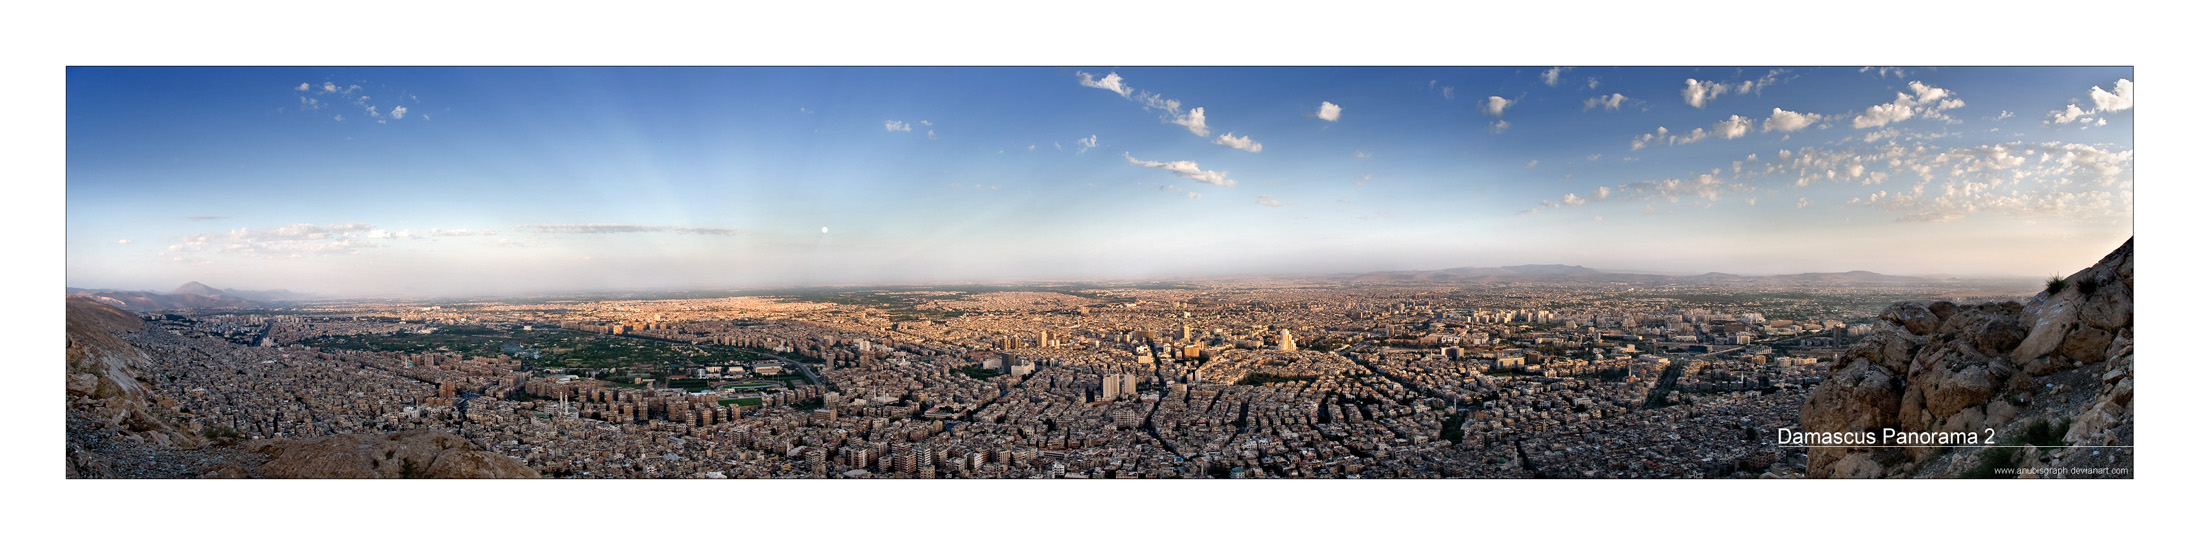 Damascus Panorama 2 by AnubisGraph